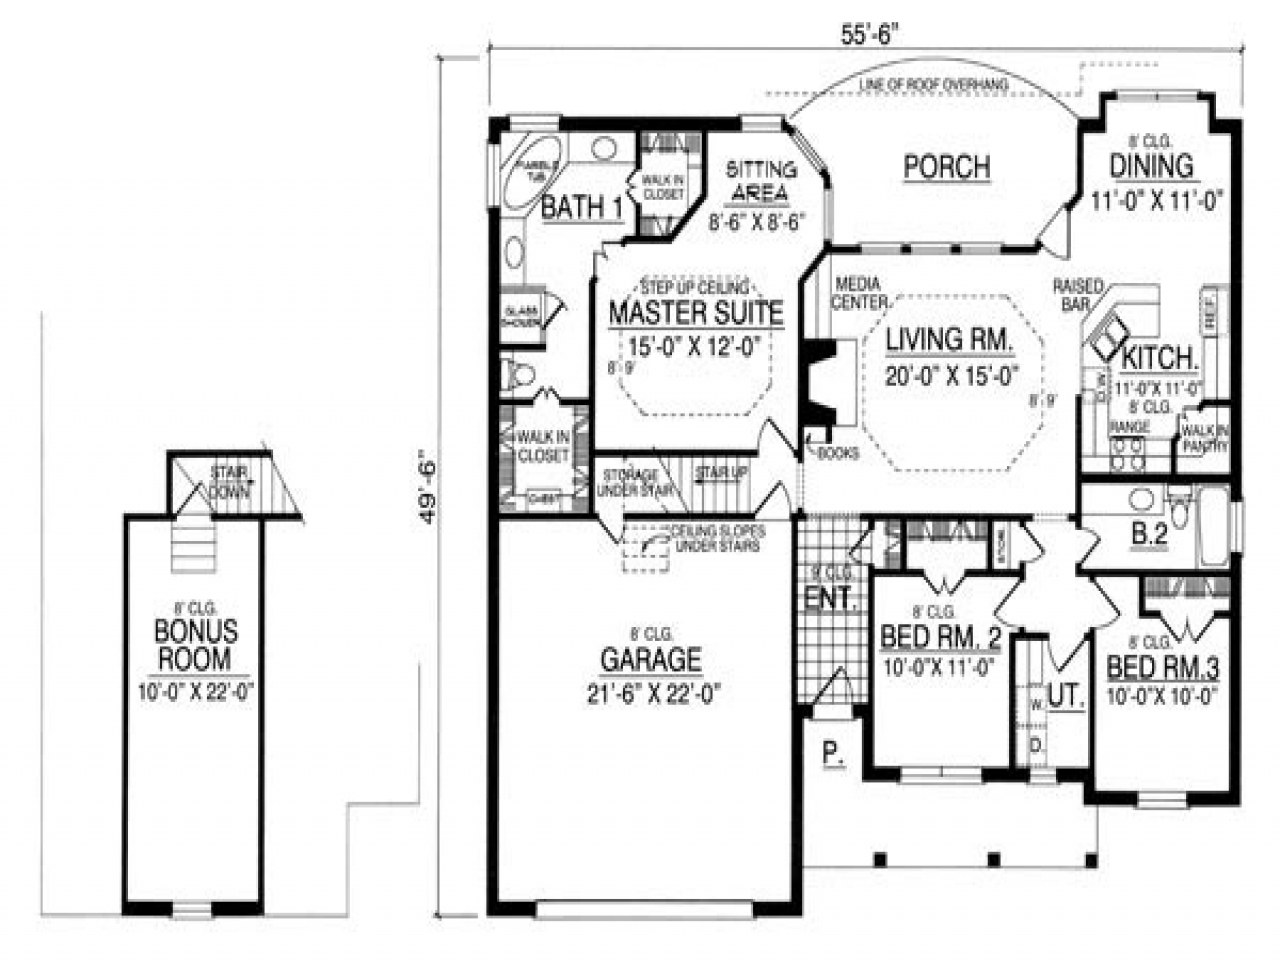 One story bungalow floor plans bungalow house plans with for Bungalow house plans with basement and garage